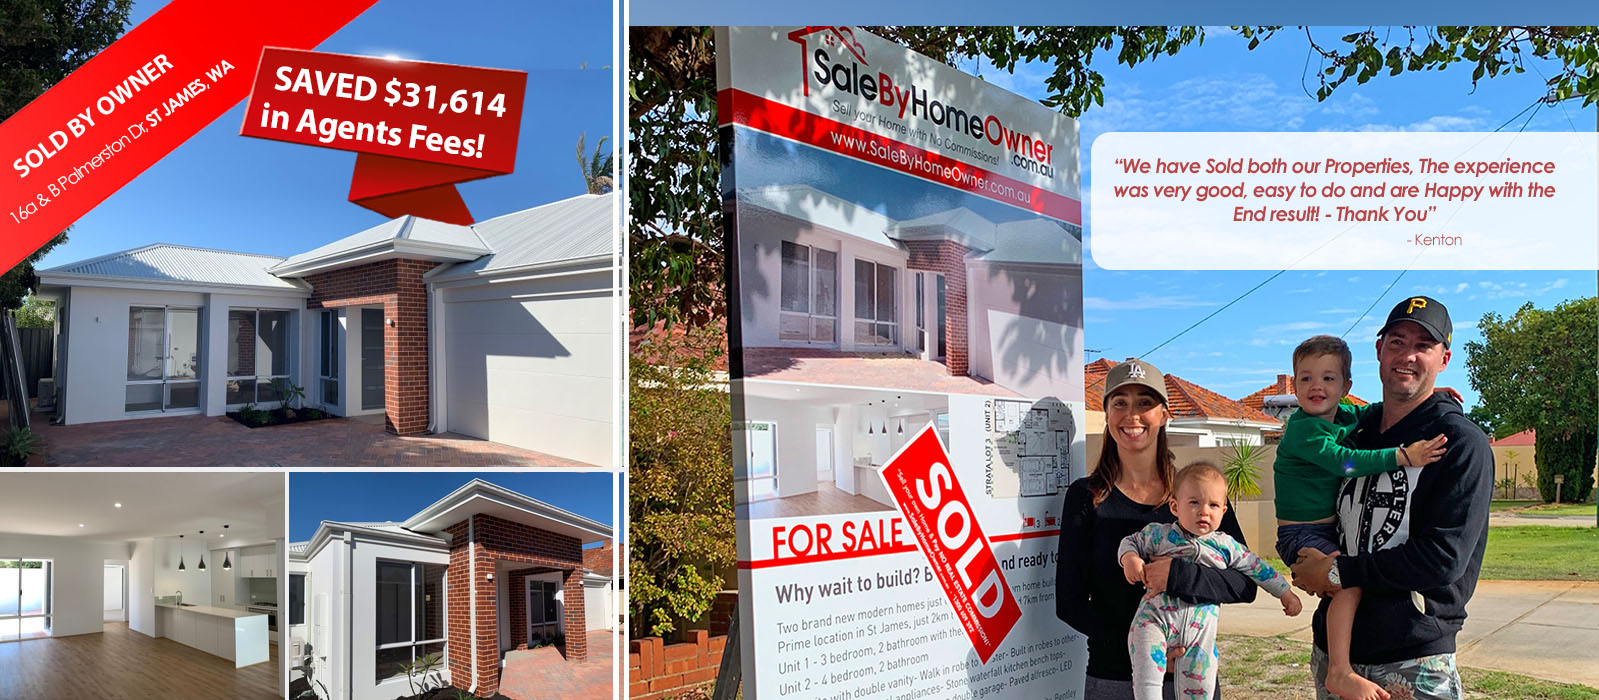 For Sale By owner in NSW with Houses For Sale Privately